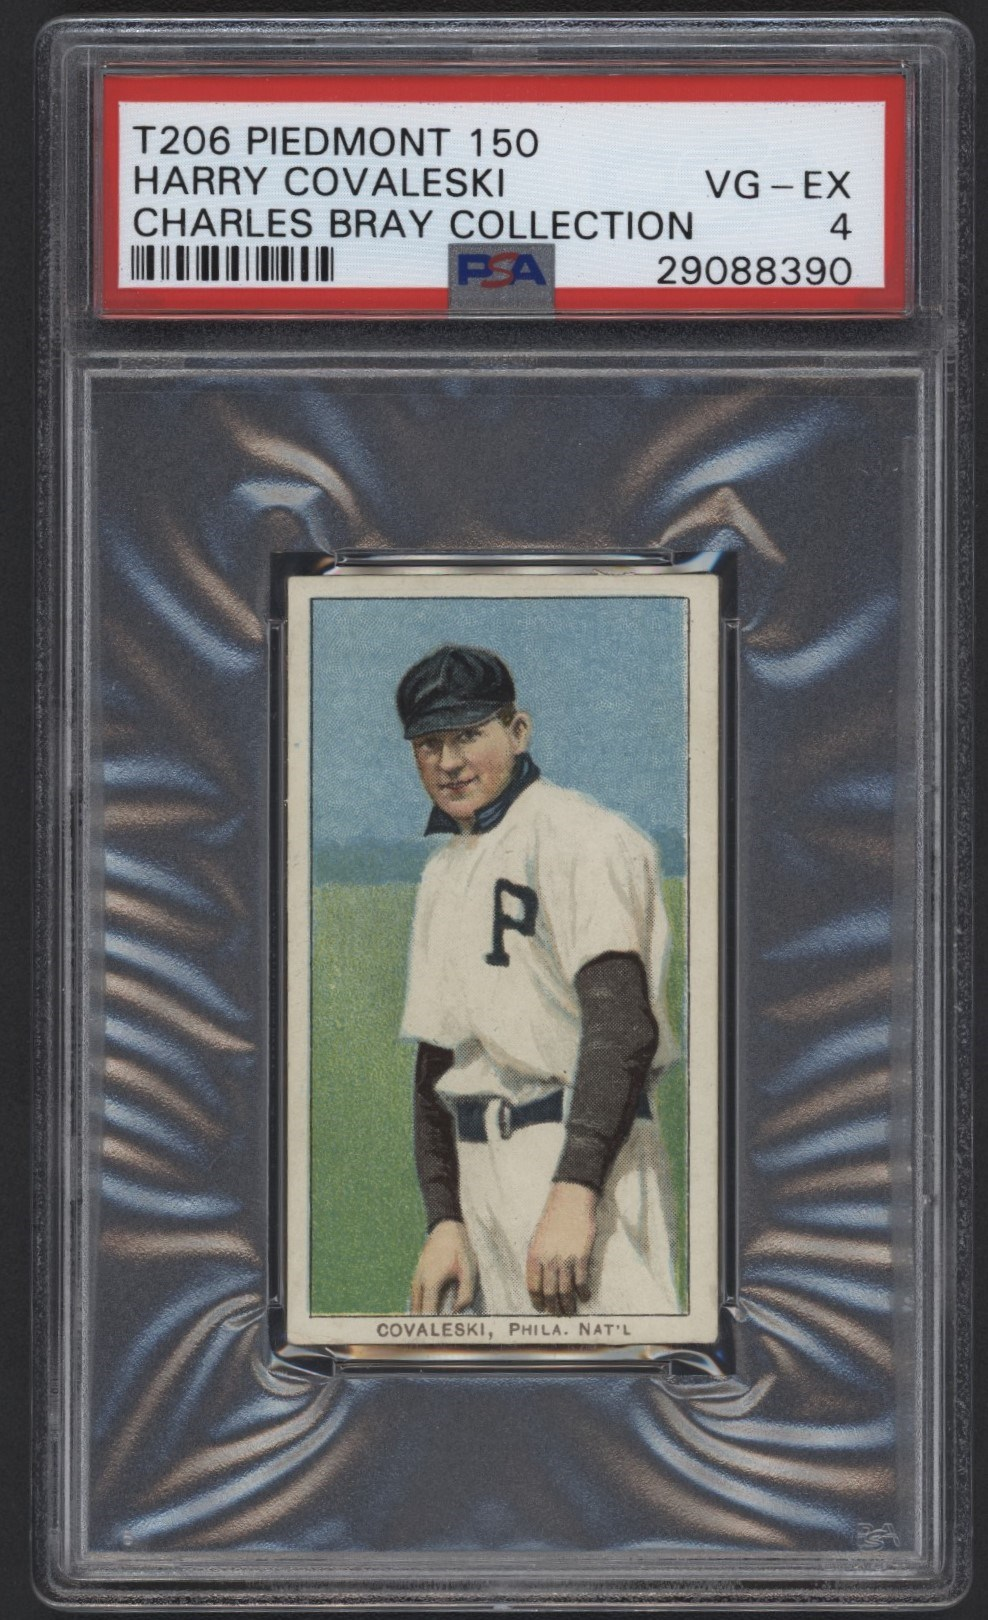 T206 Piedmont 150 Harry Covaleski PSA 4 From the Charles Bray Collection